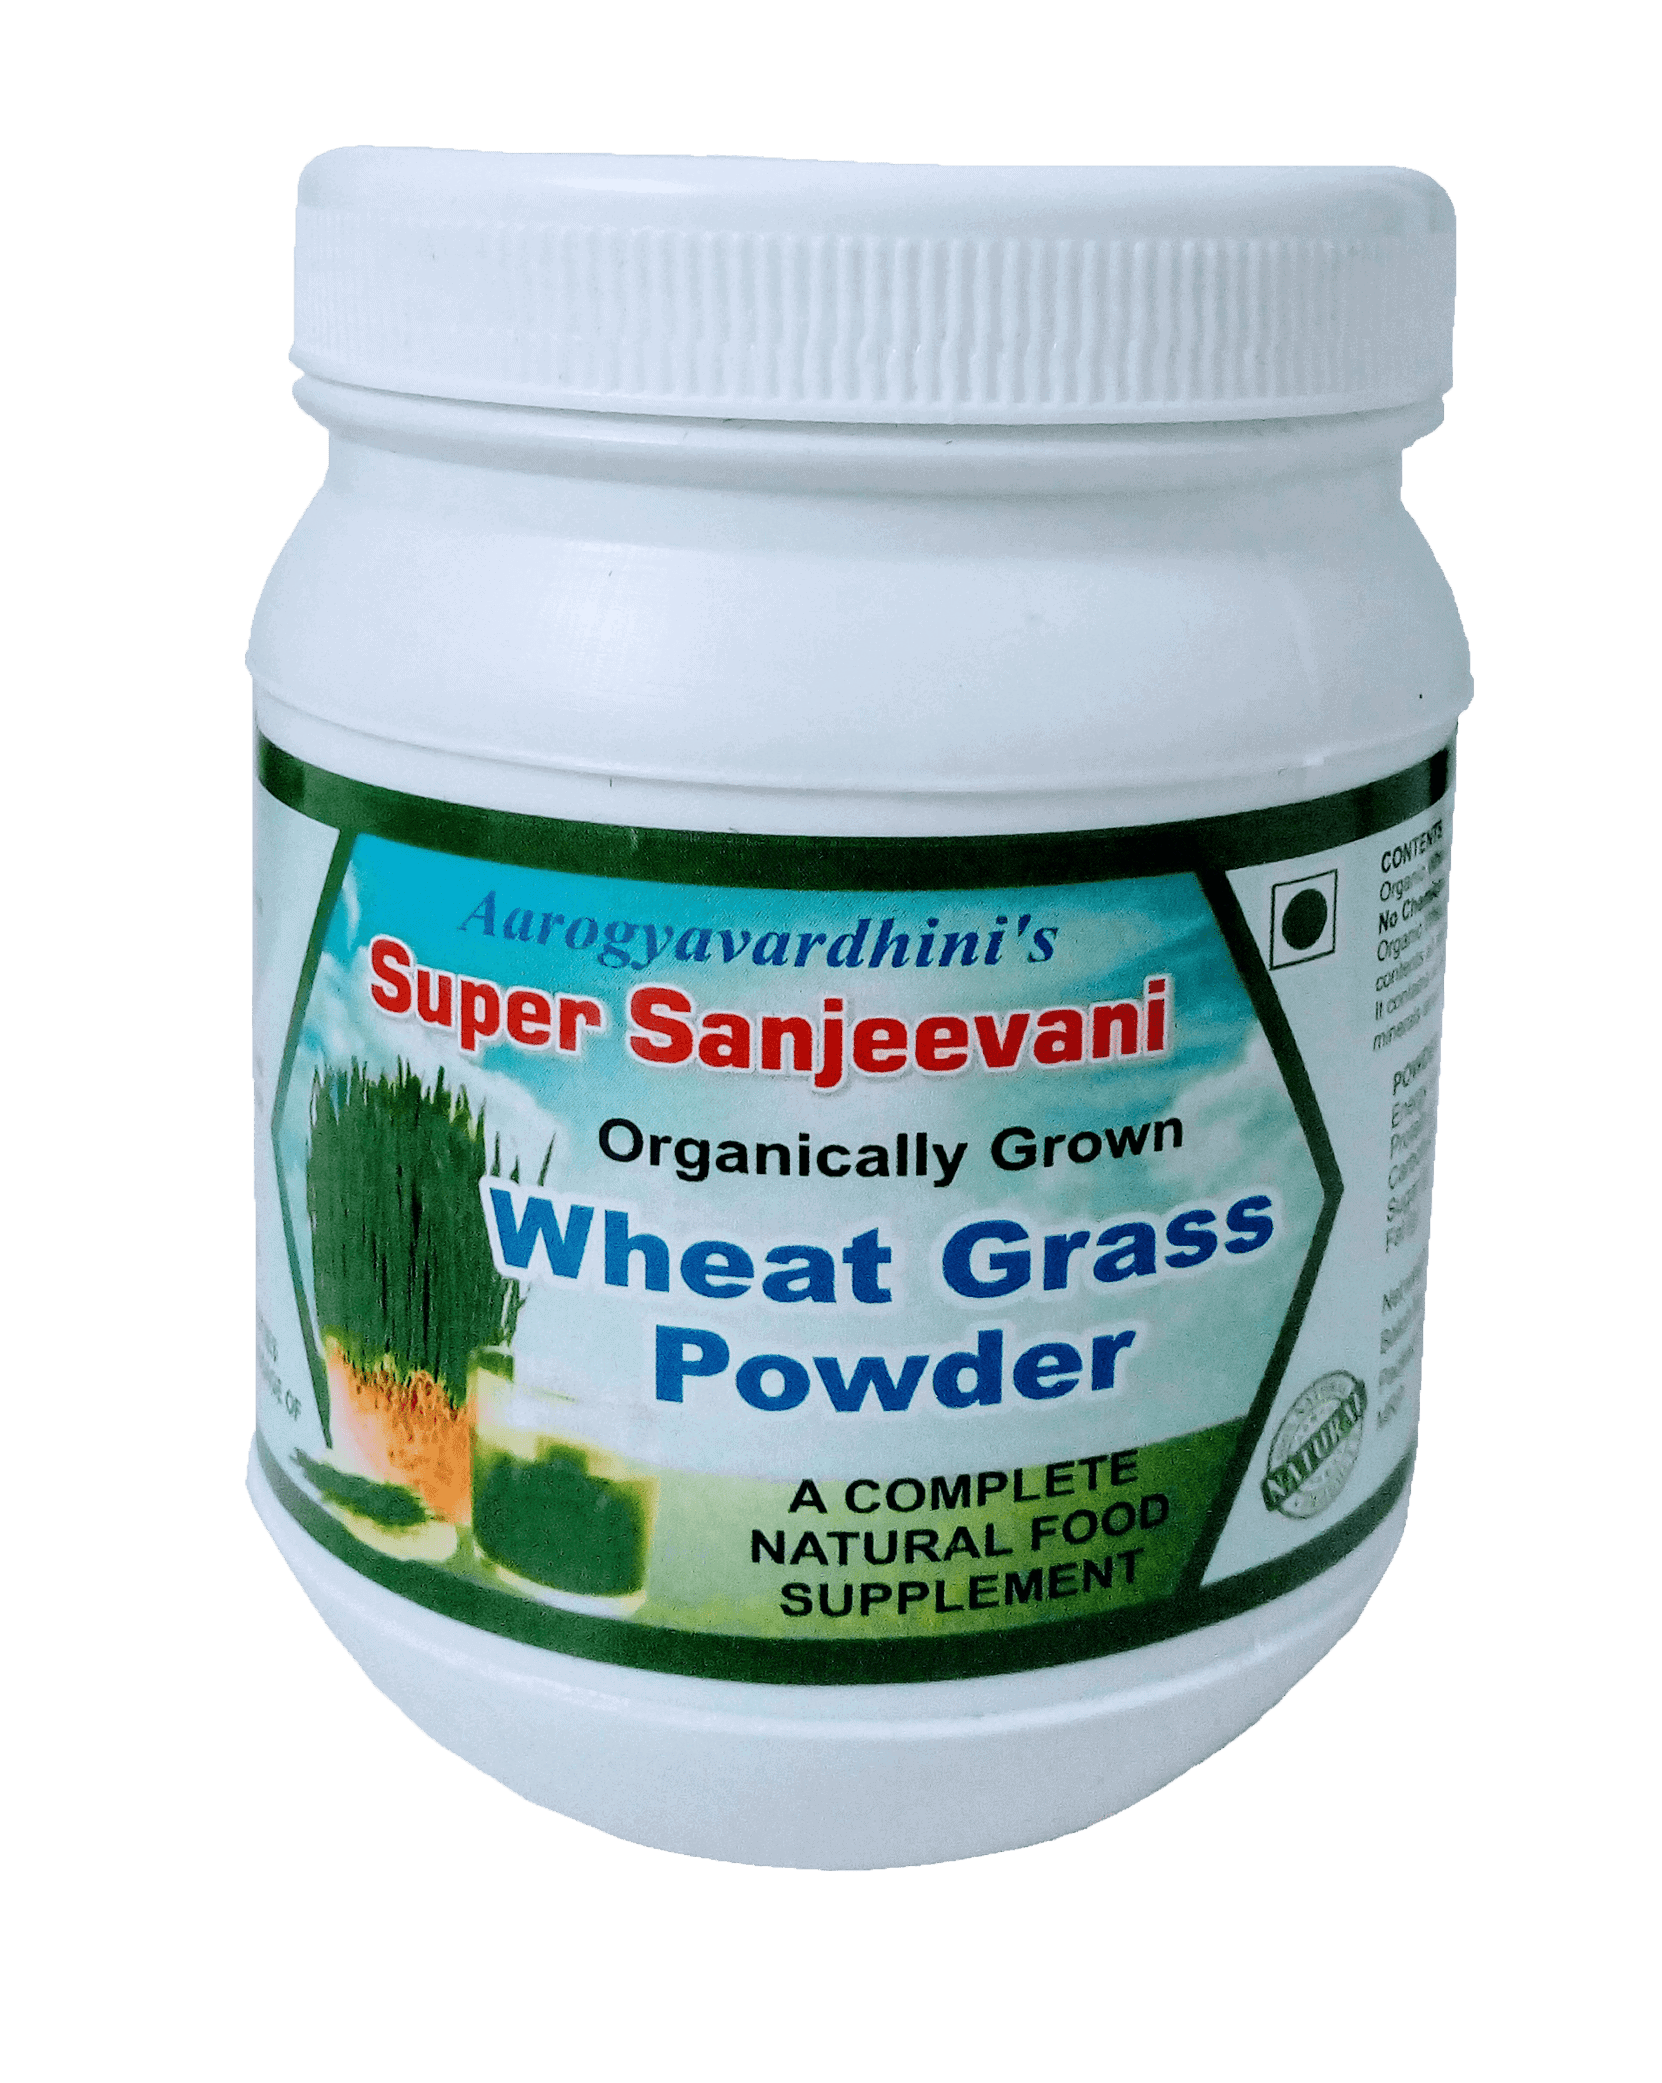 ArogyaVardhini Wheatgrass Powder